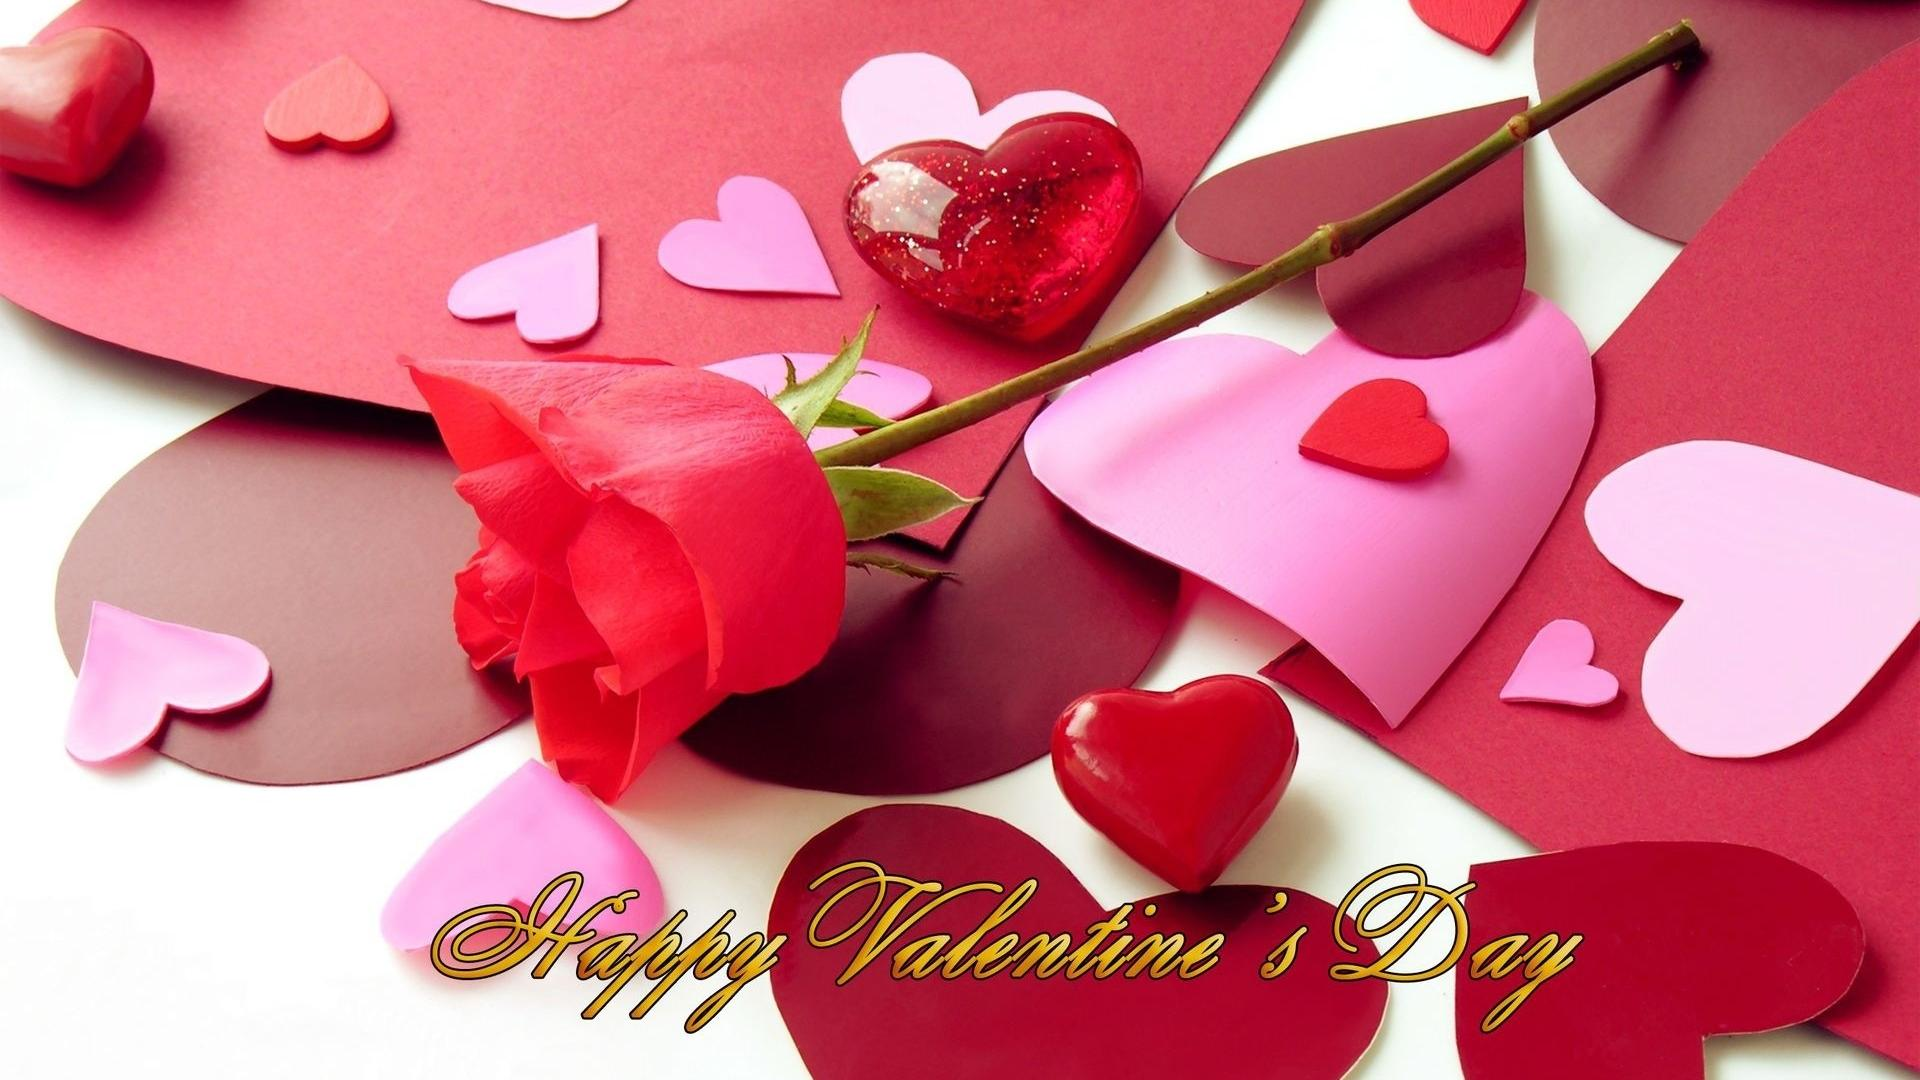 happy valentine\u0027s day hd wallpaper wallpapersafarihappy valentines day flower hd wallpaper of love hdwallpaper2013com 1920x1080